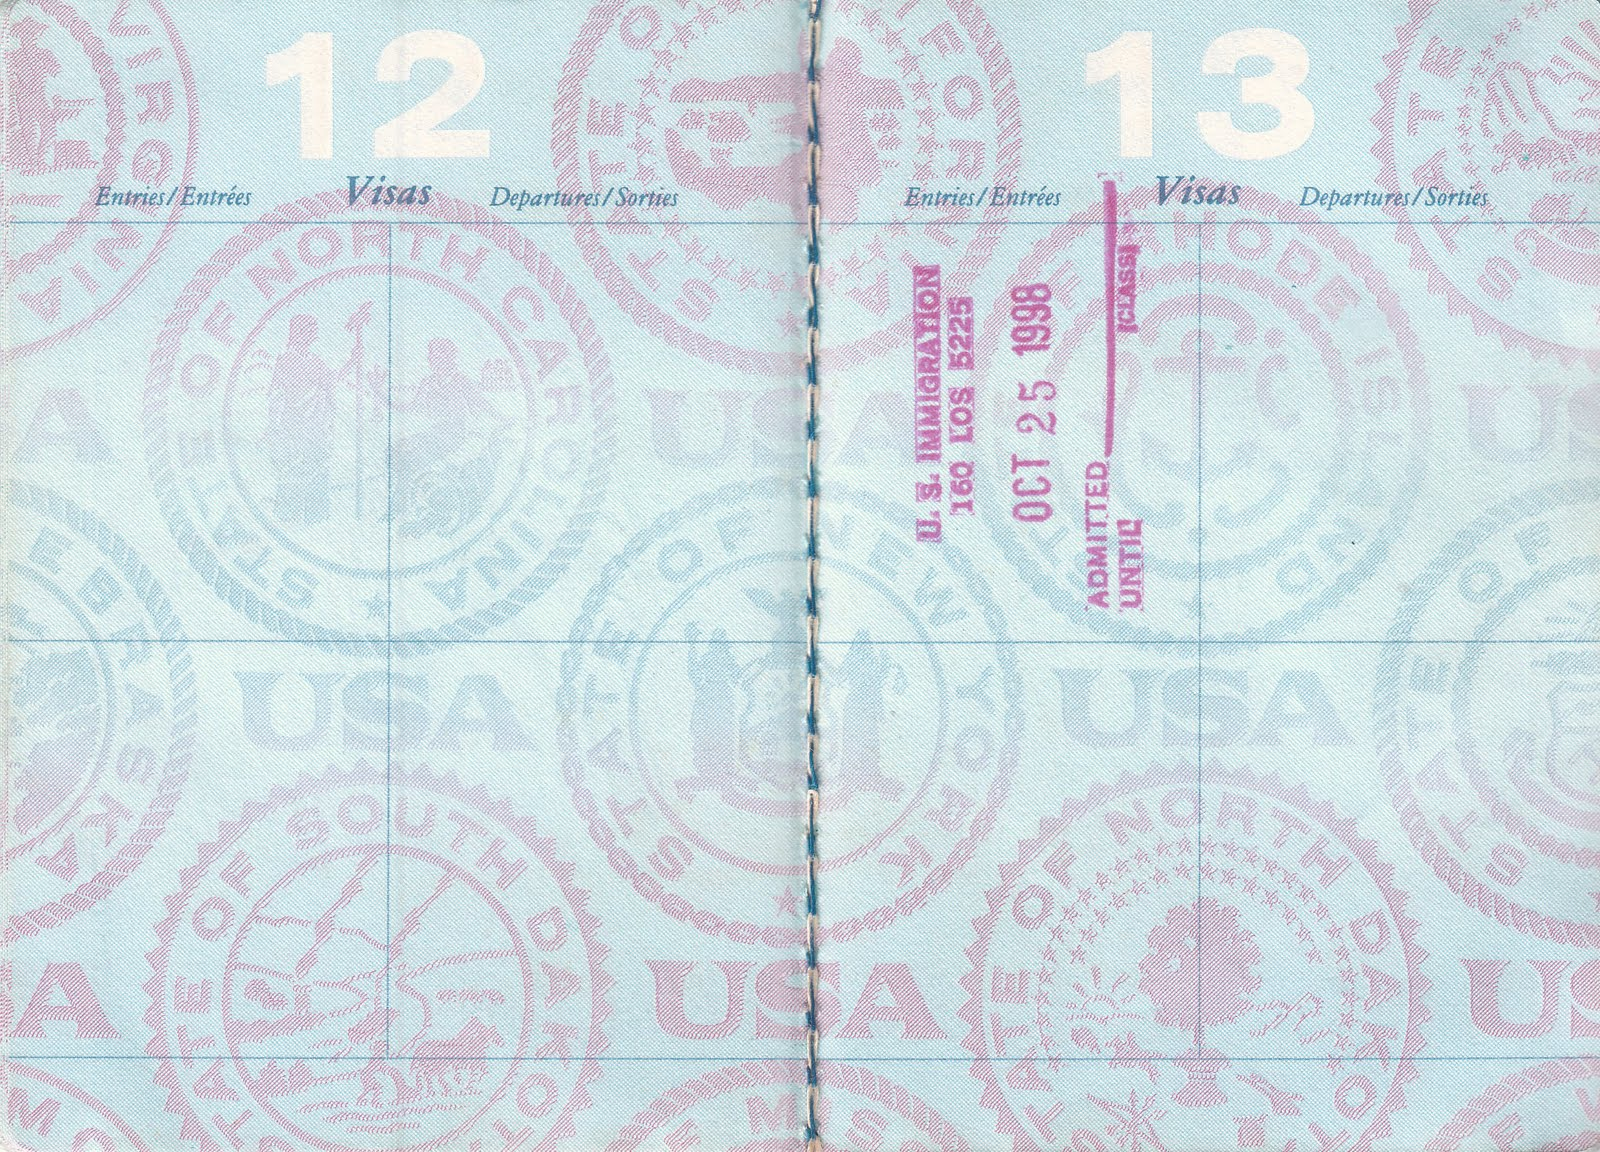 Passport Pages Background | www.imgkid.com - The Image Kid ...